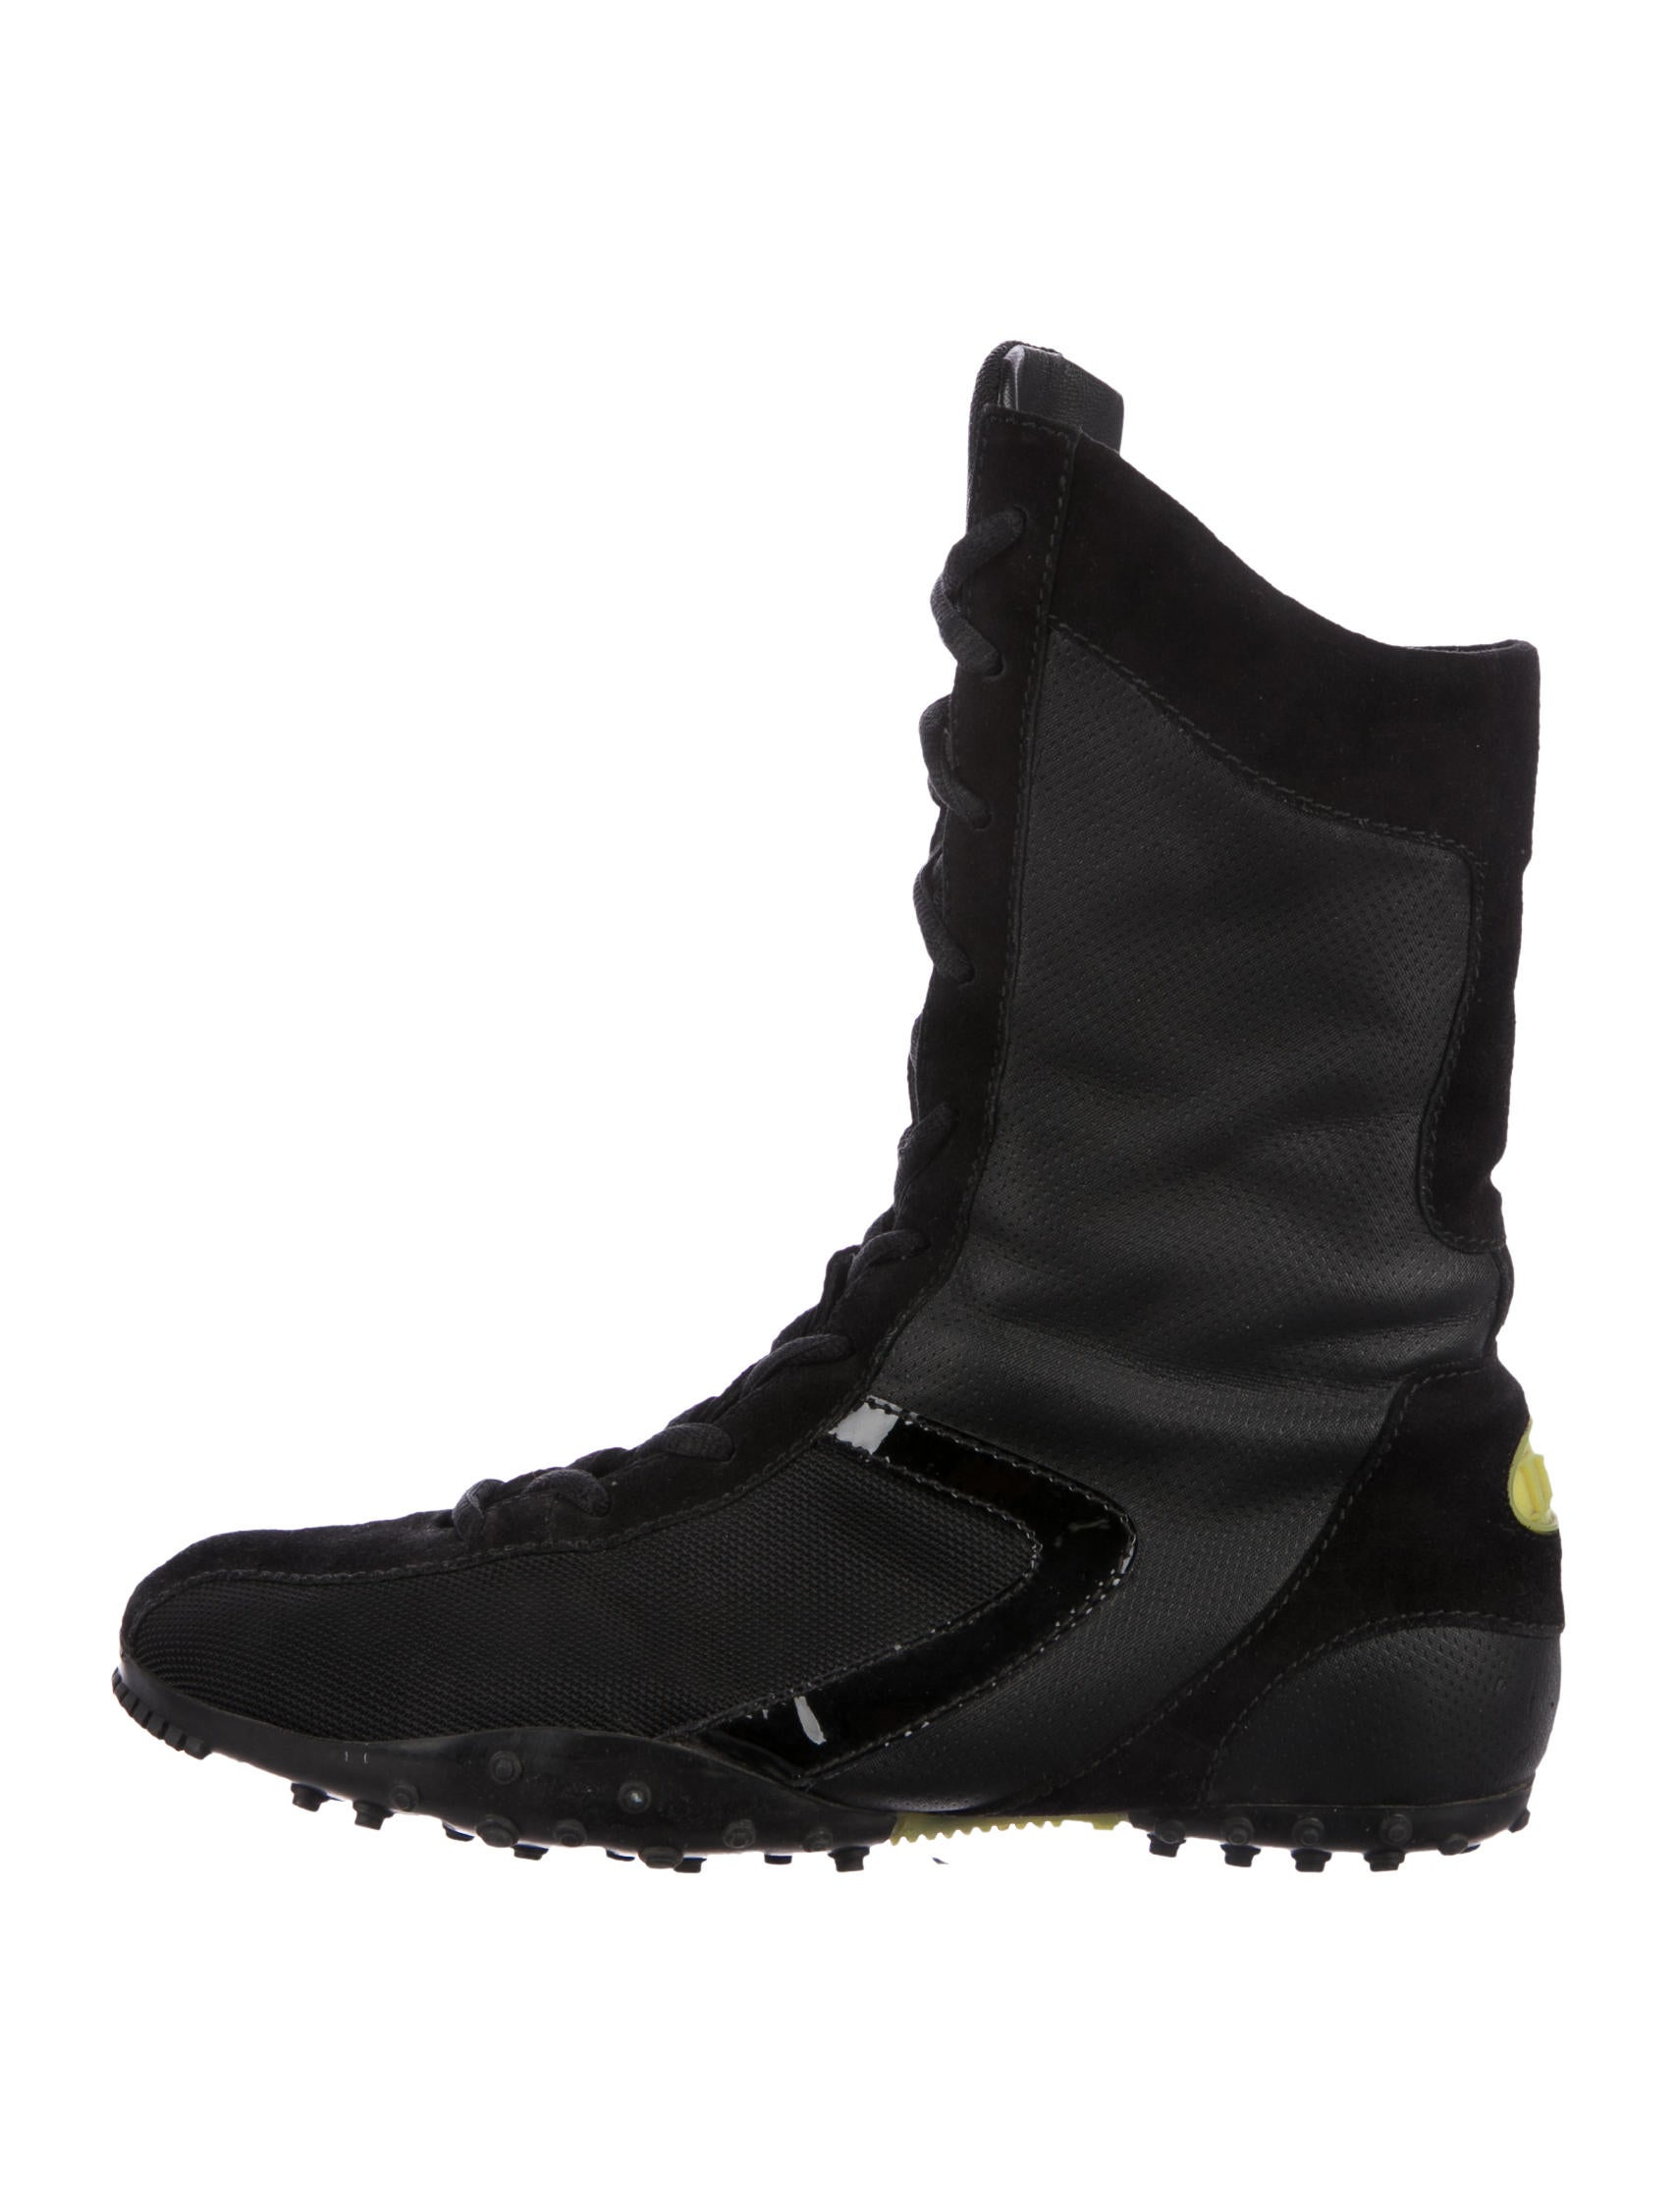 Christian Dior Suede Wrestling Boot really cheap how much free shipping how much enjoy cheap price Zv8FDJF